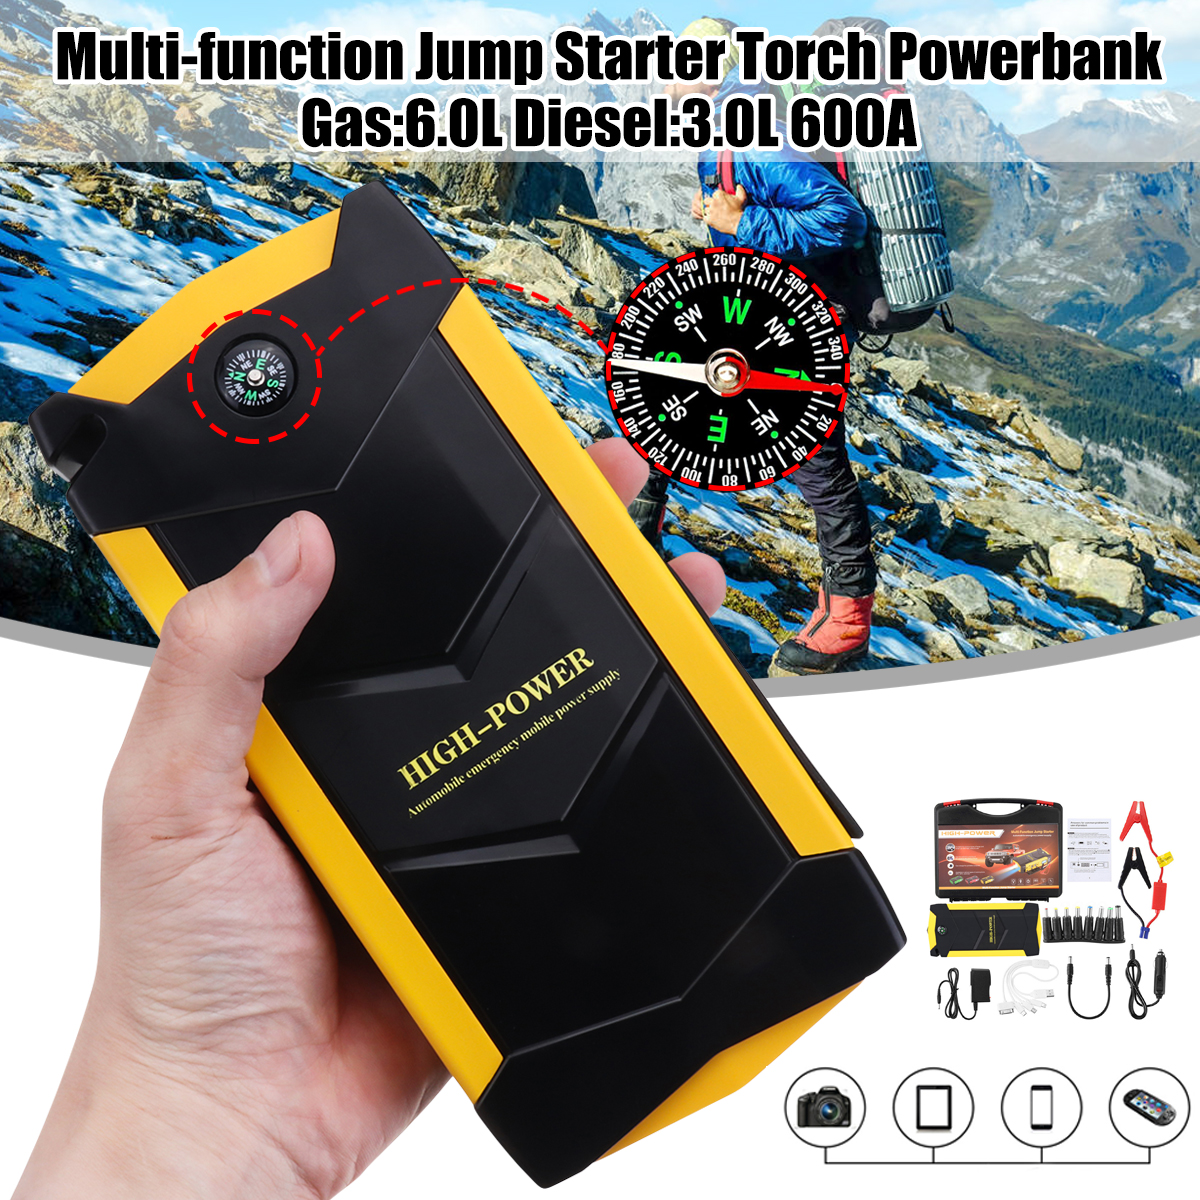 82800mAh 12V 4USB High Power Car Battery Charger Starting Car Jump Starter Booster Power Bank Tool Kit For Auto Starting Device mini portable 68000mah car battery charger starting device car jump starter booster power bank for a 12v auto starting device